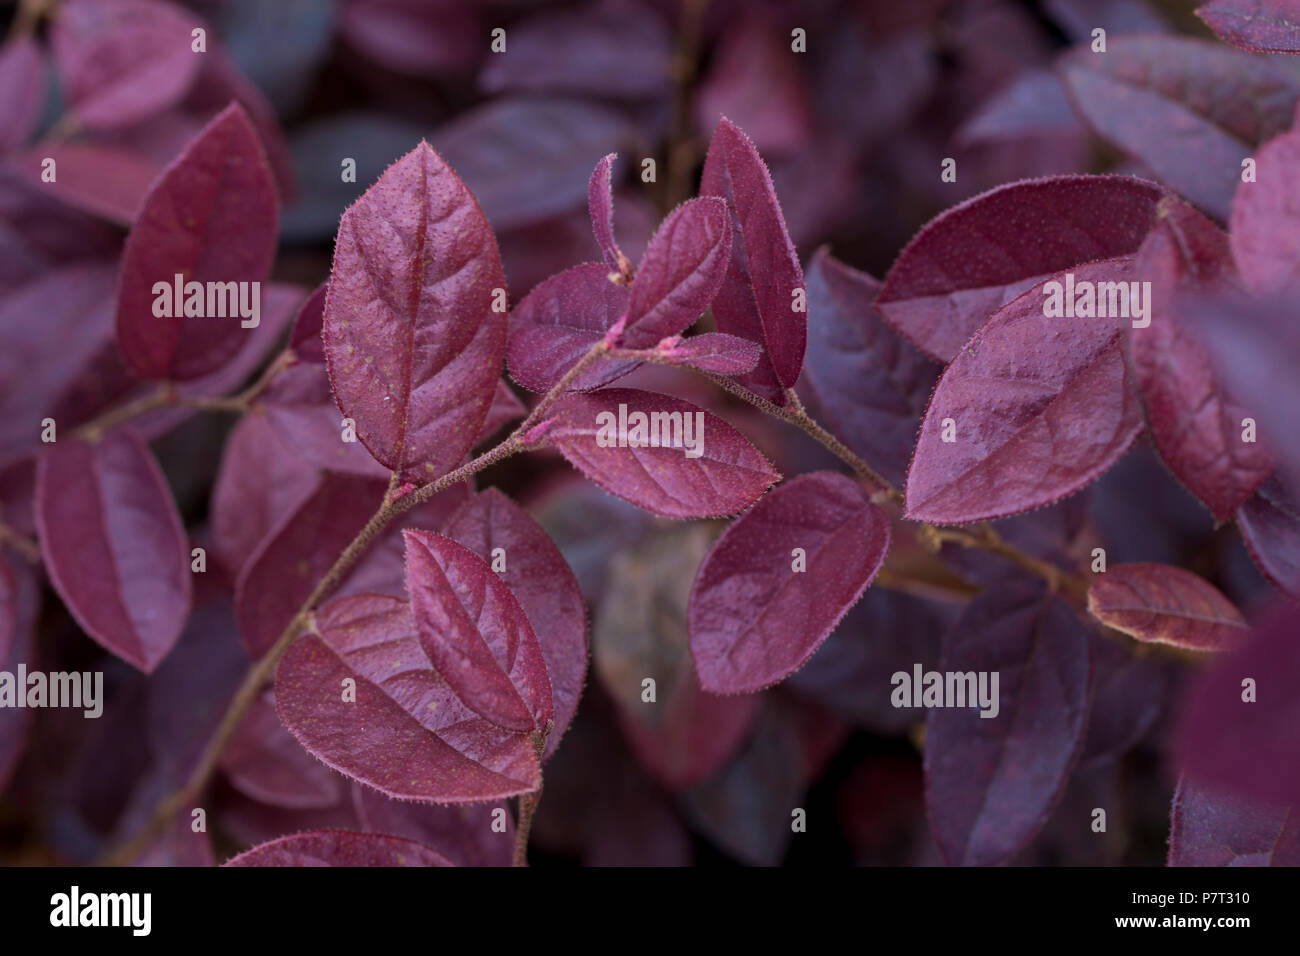 Loropetalum Stock Photos Loropetalum Stock Images Alamy